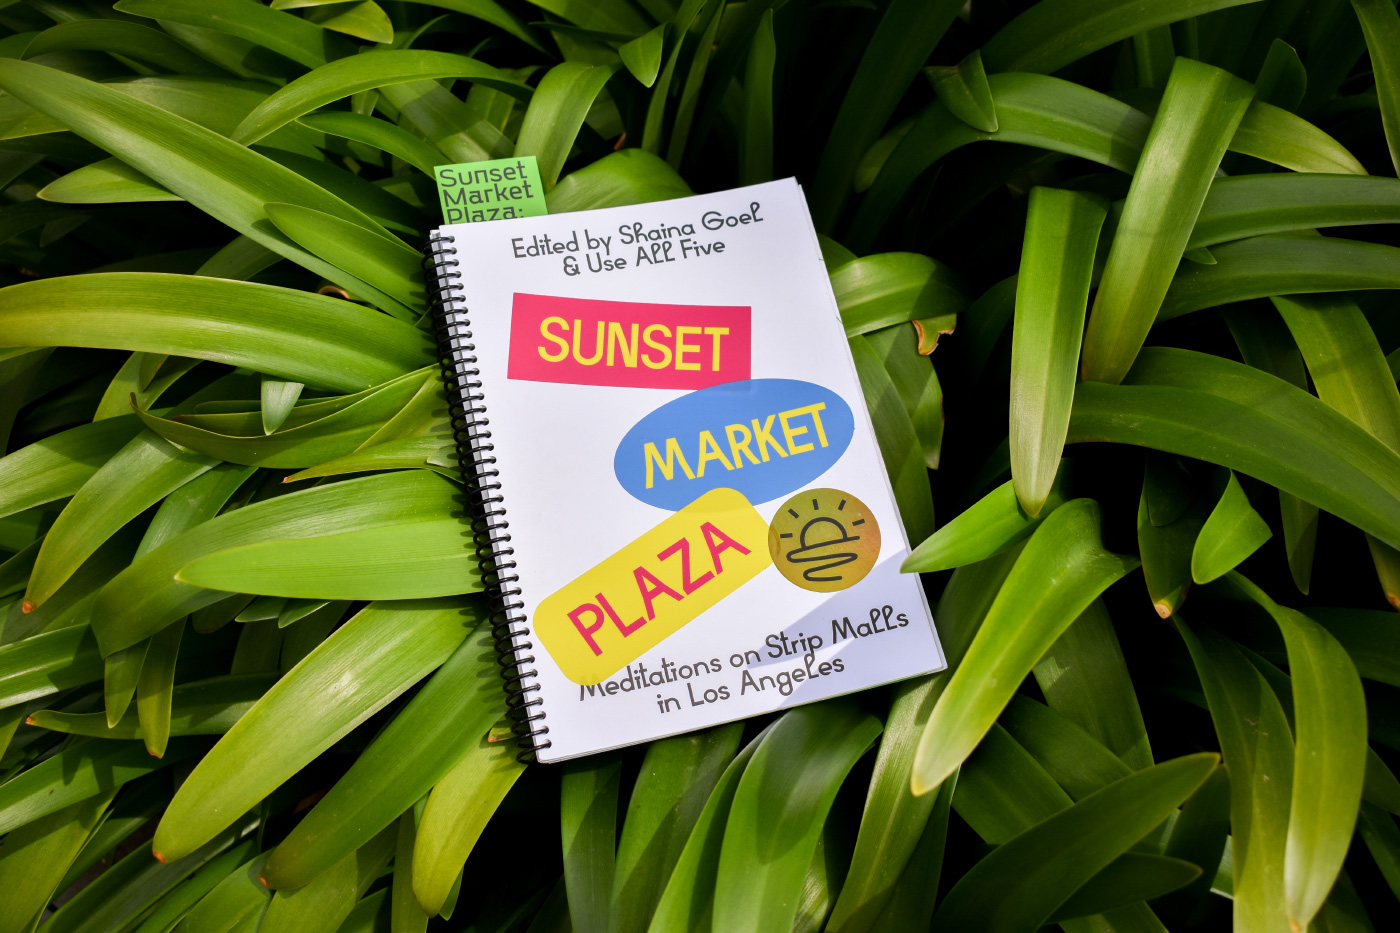 Cover of a book with Sunset Plaza Market on the cover